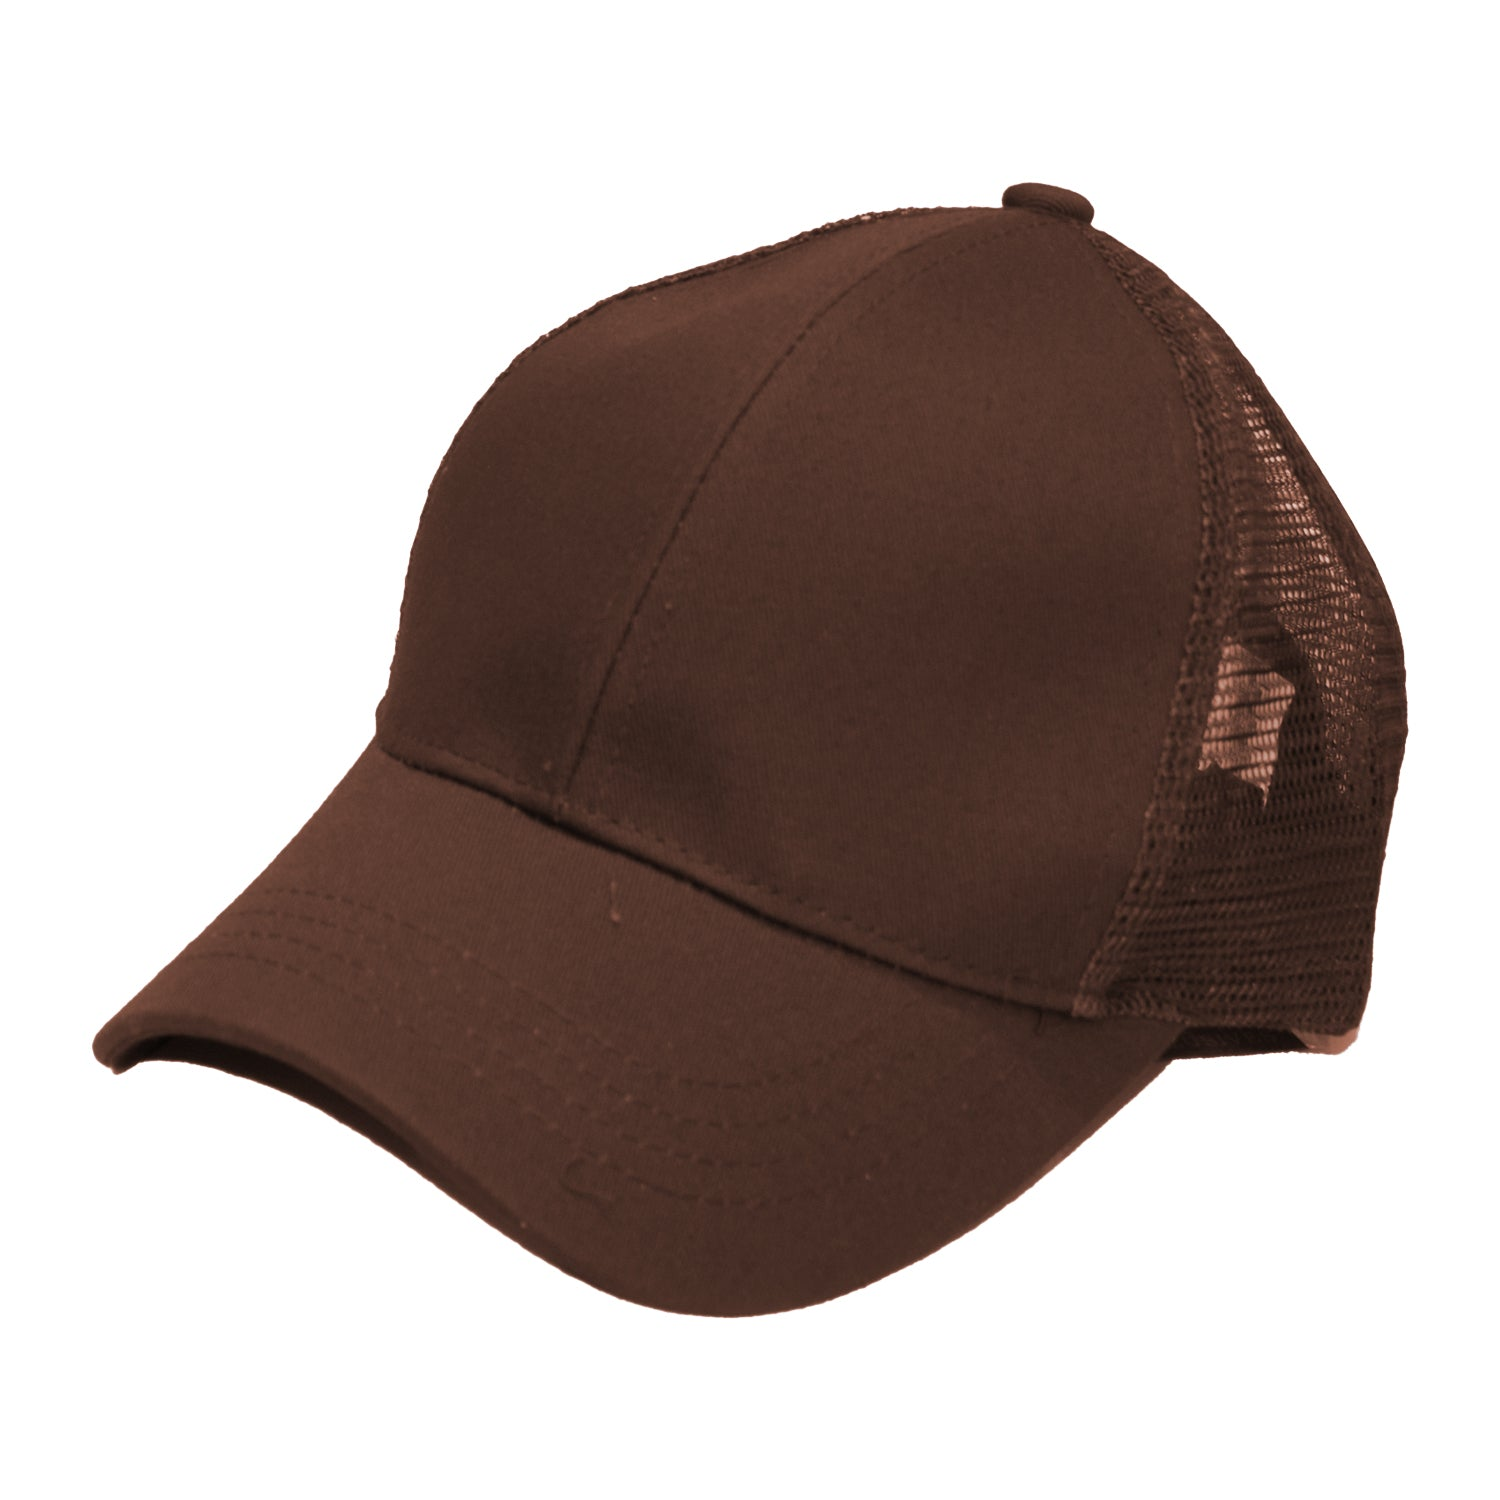 B-4 C.C Pony Caps Chocolate